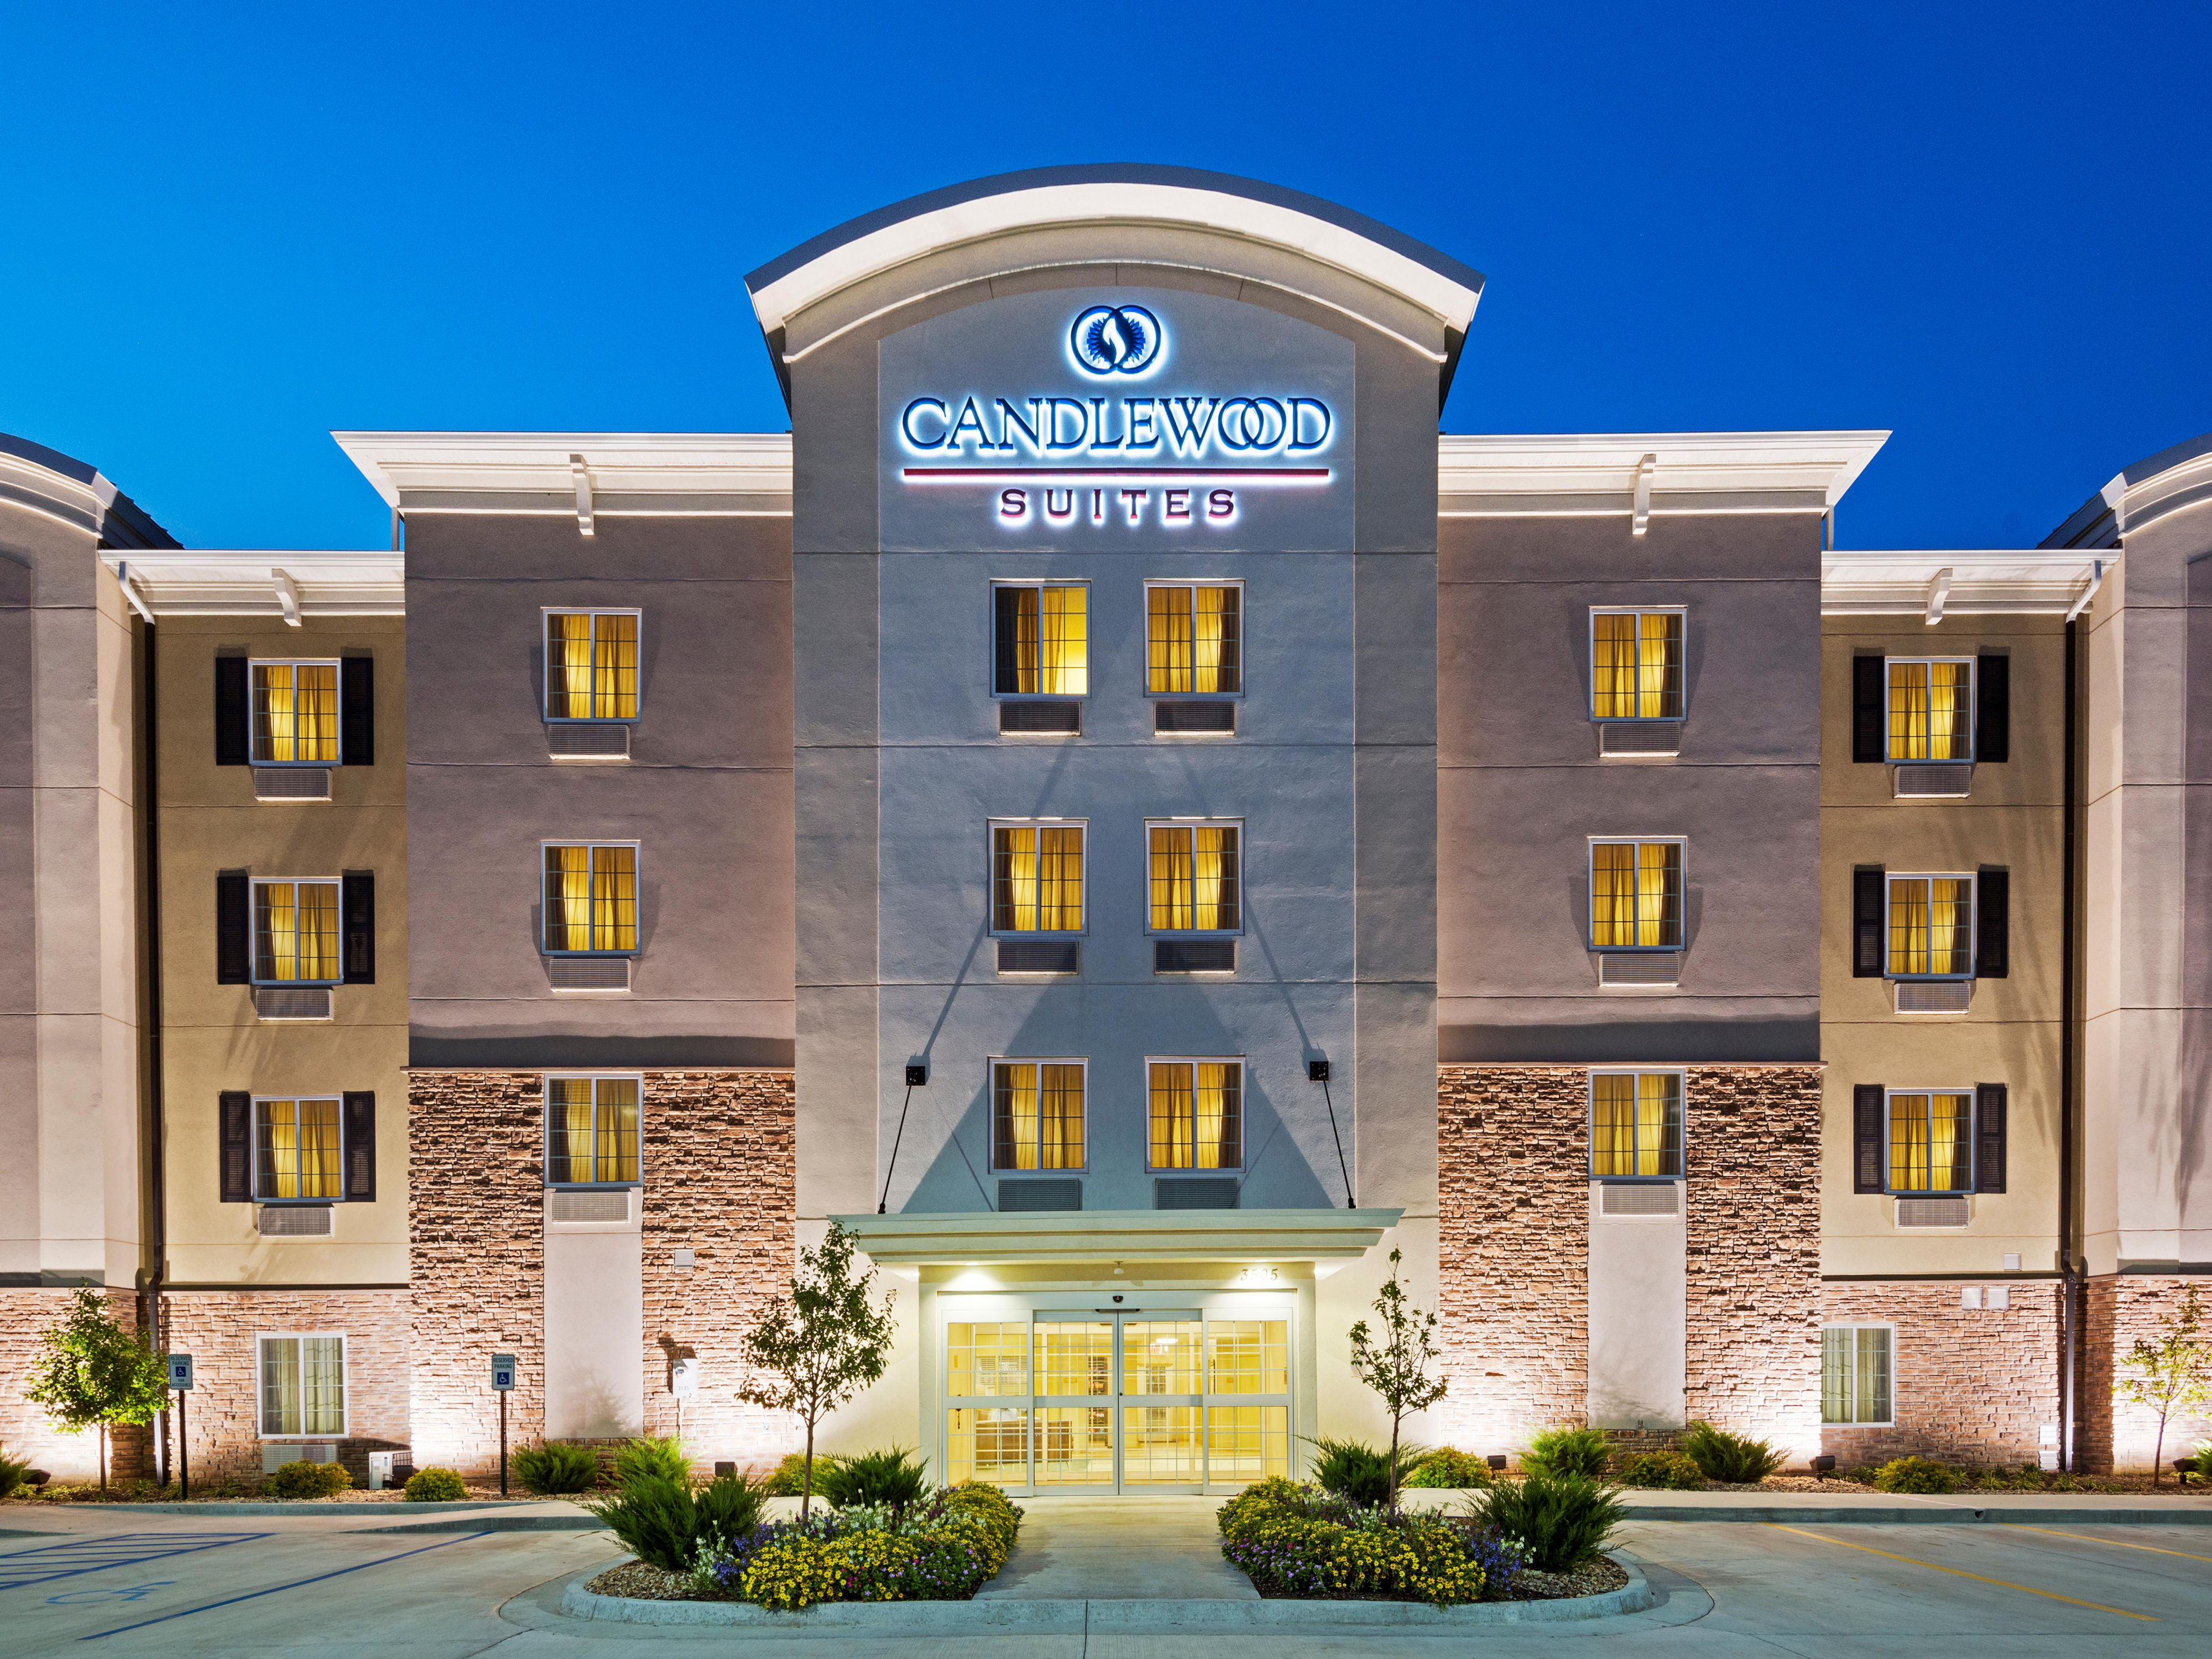 Candlewood Suites Independence Mo Hotel Near Kansas City By Ihg